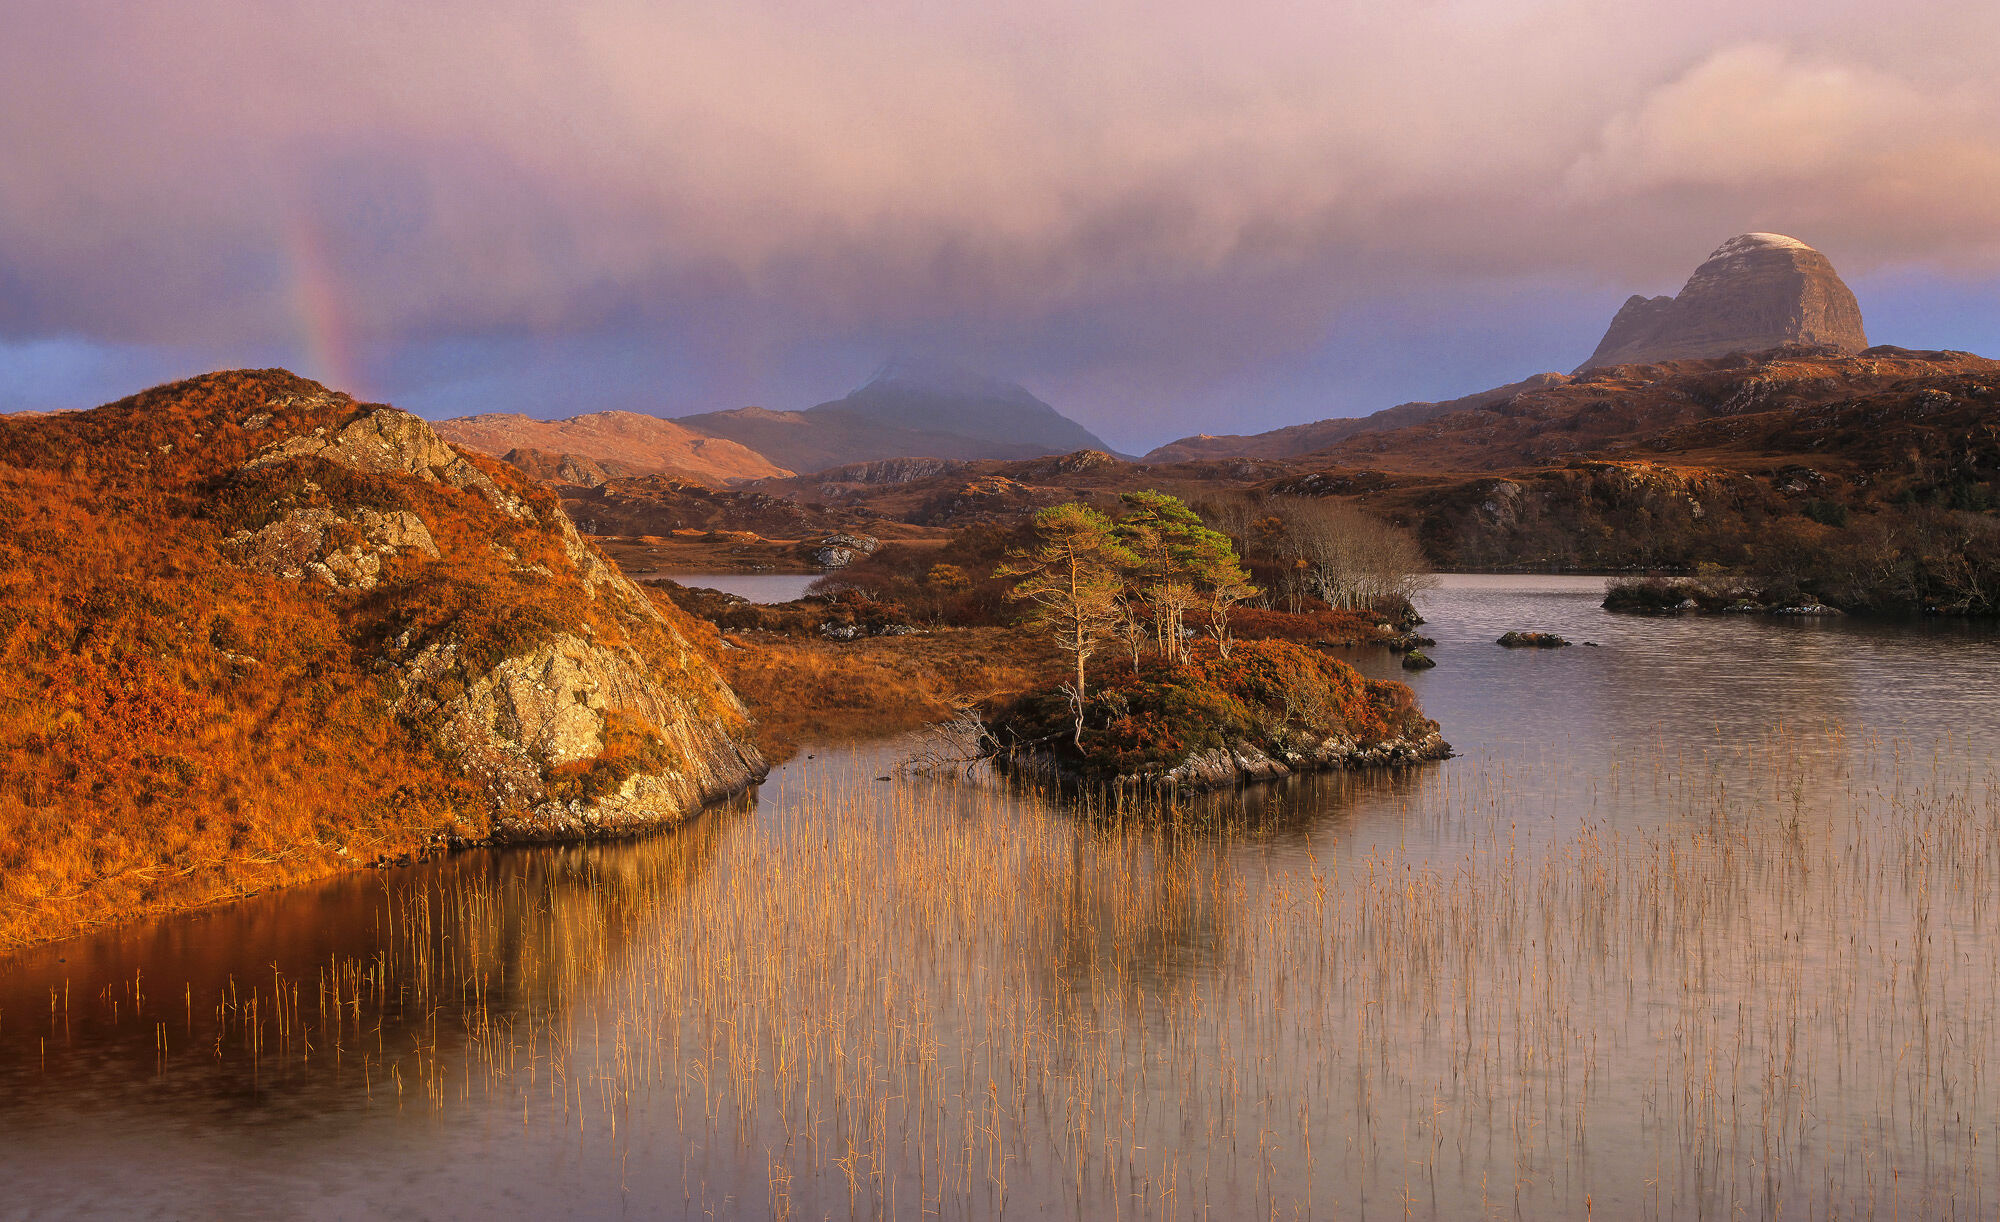 Astonishingly beautiful golden light found a way to escape the low hanging clouds over Loch Druim Suardalain near Loch Inver...